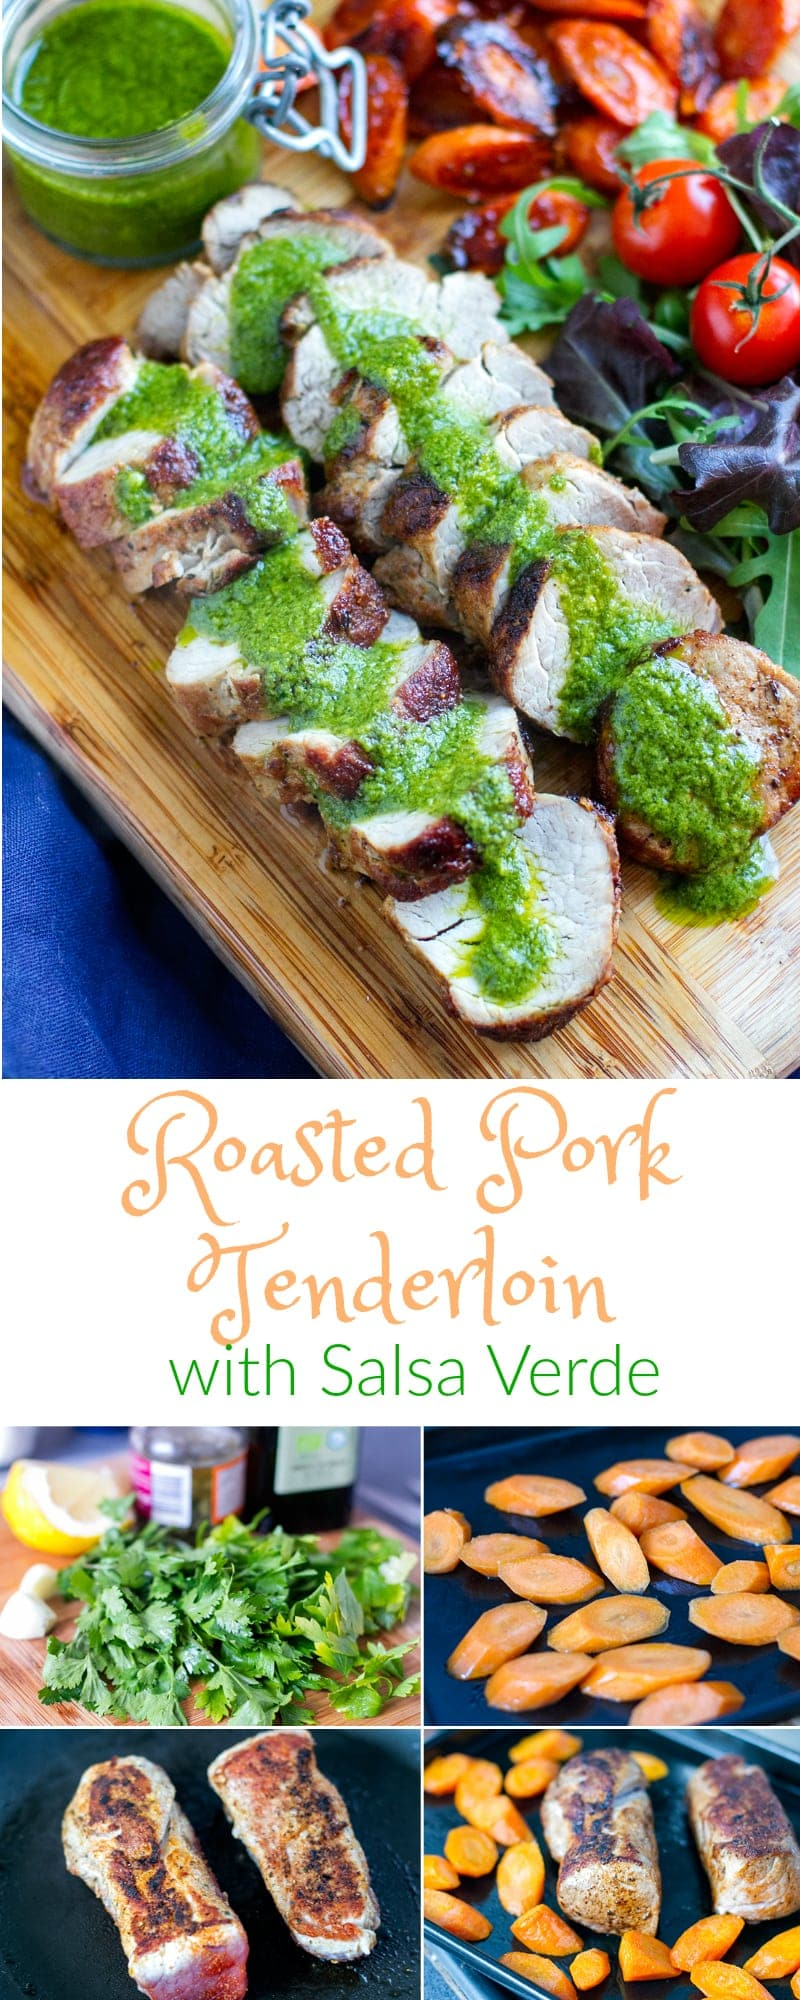 Roasted Pork Tenderloin With Salsa Verde & Balsamic Carrots - Low Carb, Paleo | Peace Love and Low Carb